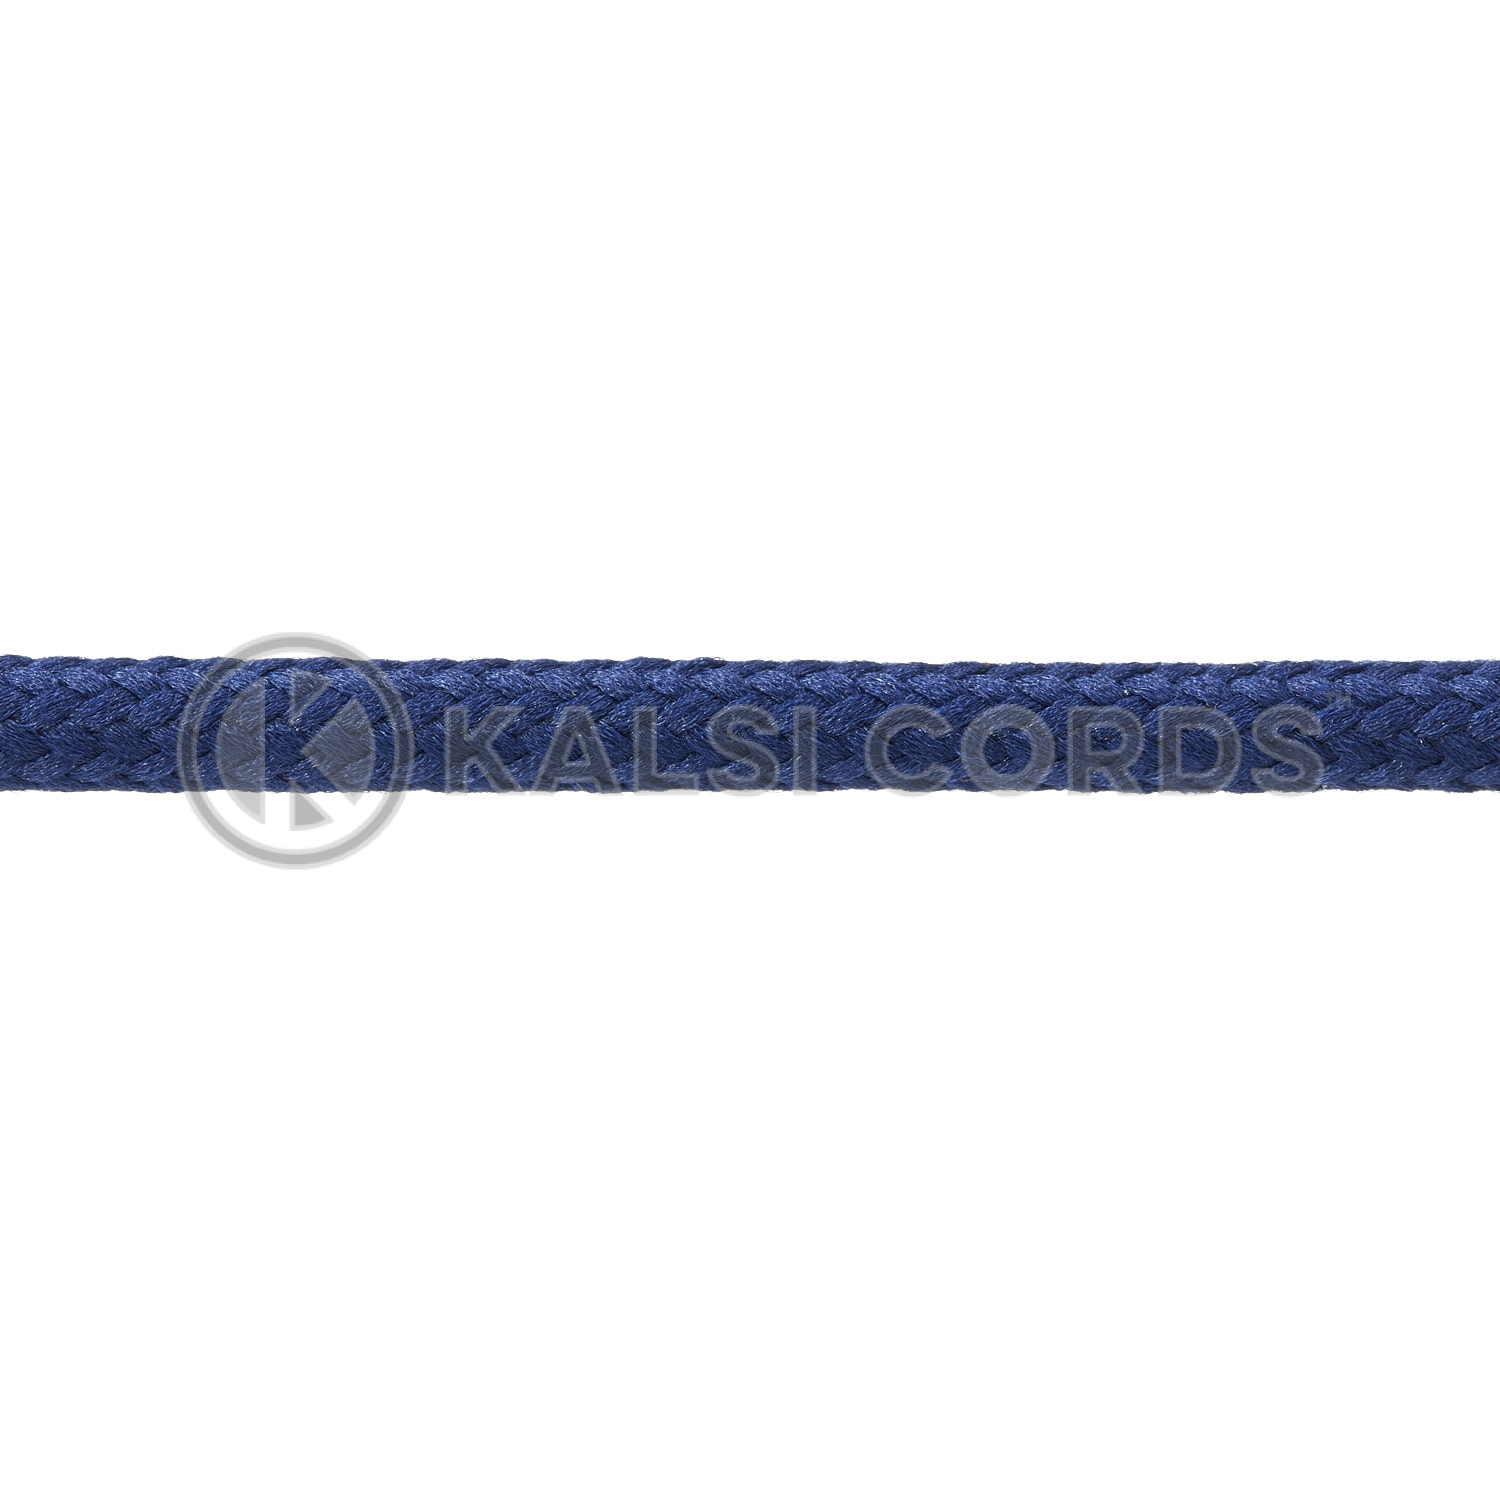 T621 5mm Round Cord Shoe Laces Dark Blue PG795 Kids Trainers Adults Hiking Walking Boots Kalsi Cords